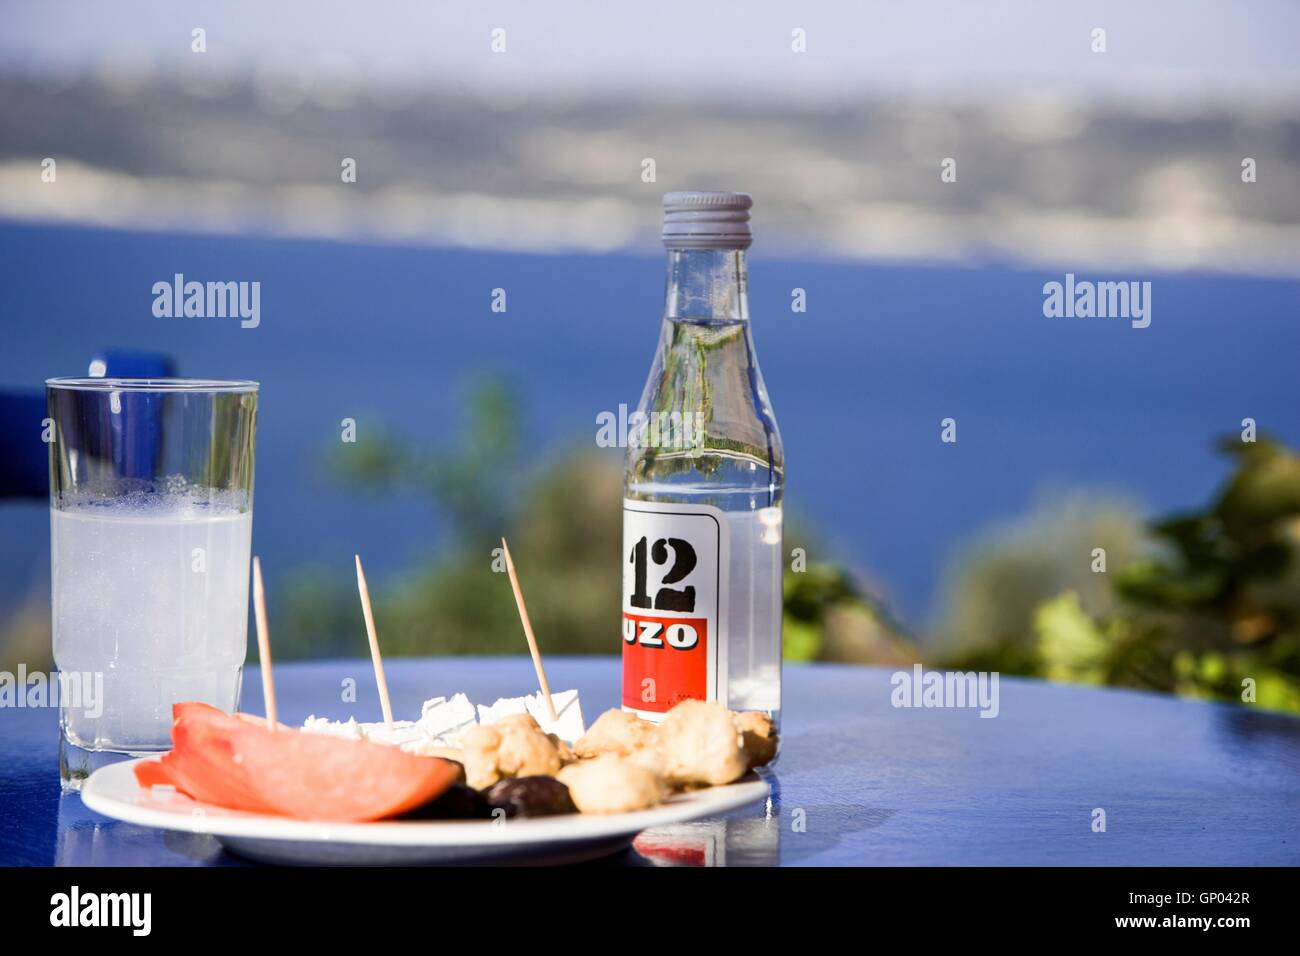 Griechische Küche Berlin Bottle Ouzo Greece Stockfotos And Bottle Ouzo Greece Bilder